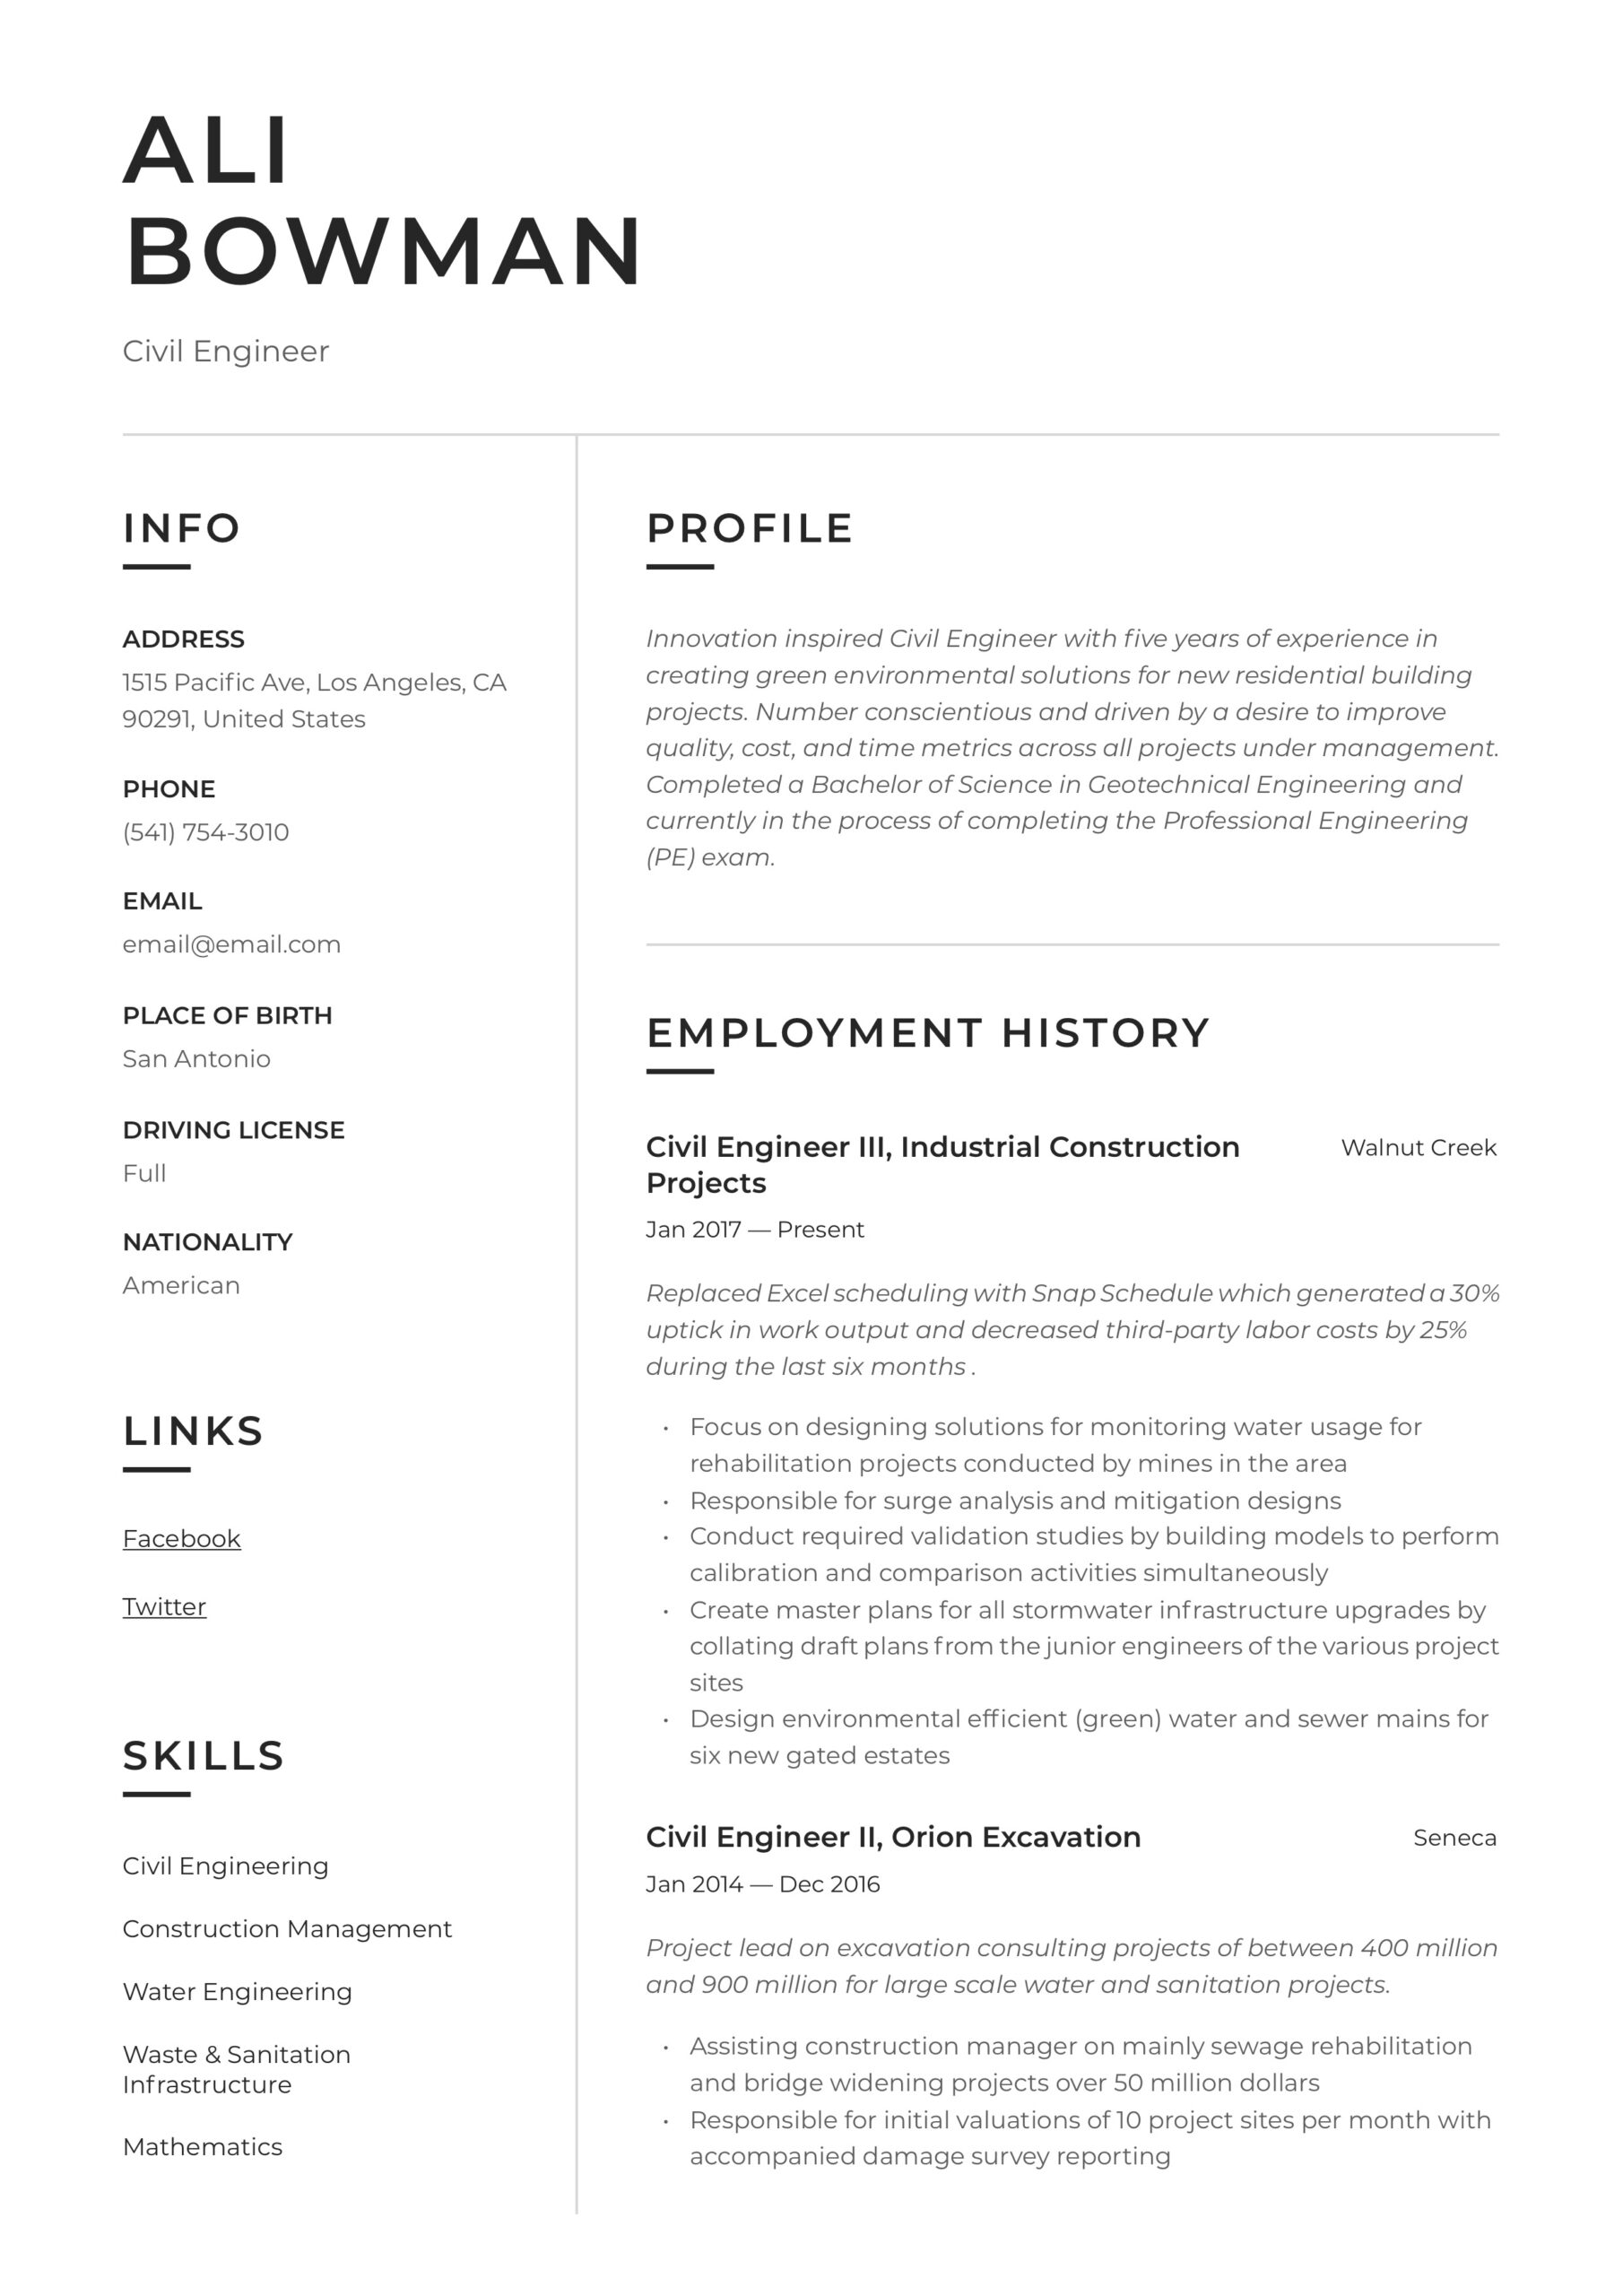 civil engineer resume writing guide templates format entry level data childcare Resume Civil Engineer Resume Format